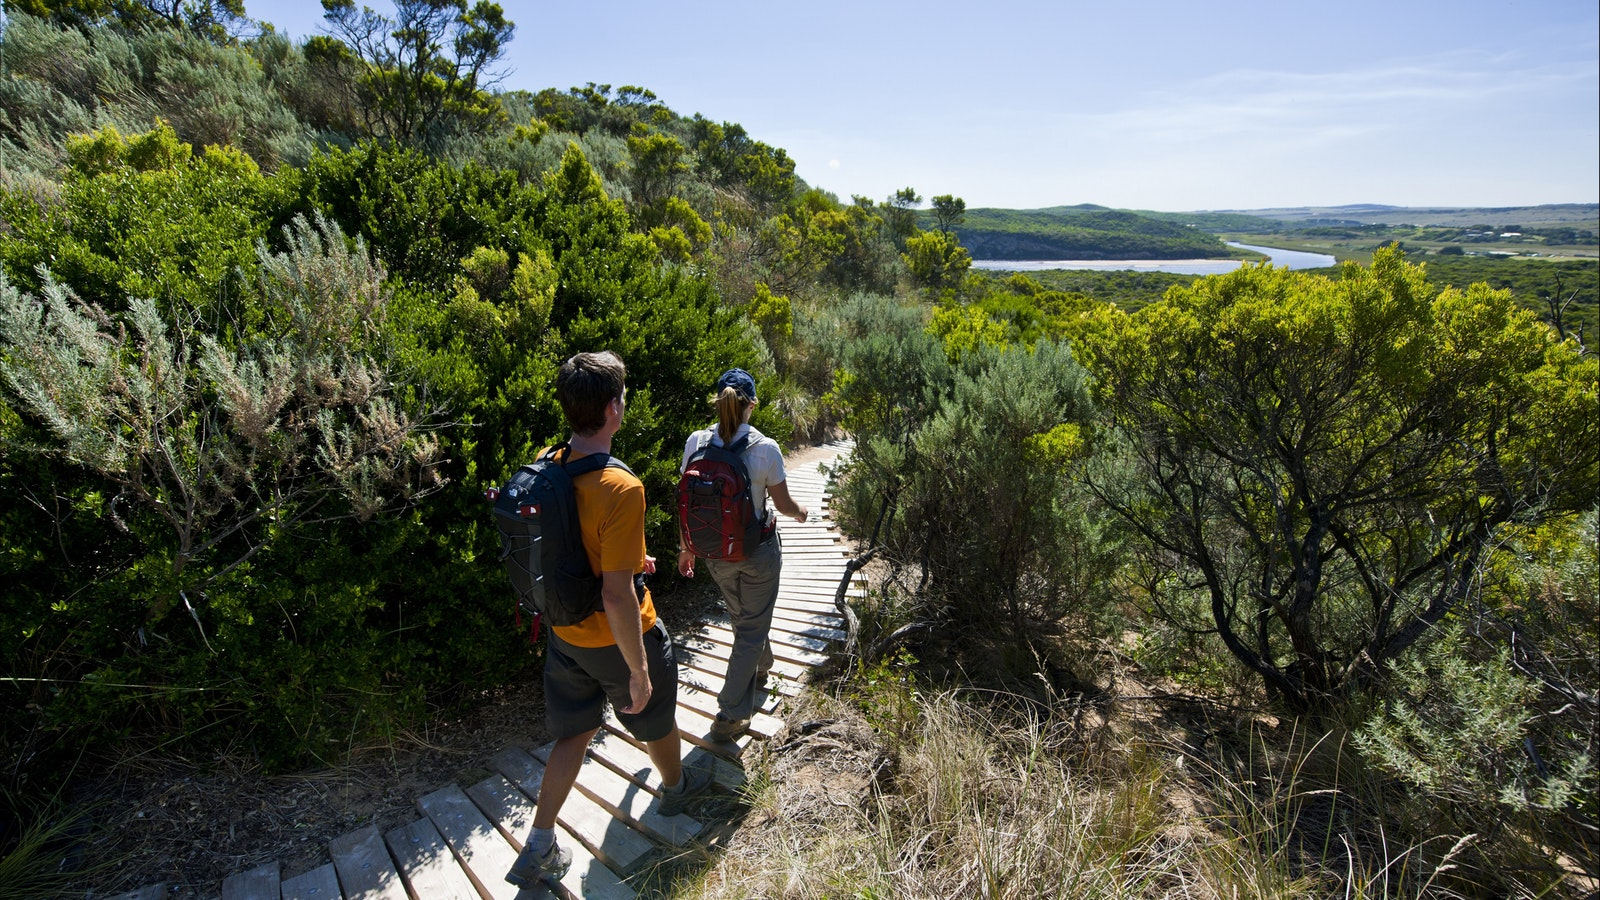 Take a stroll on the Great Otway National Park Trails, Great Ocean Road Tour